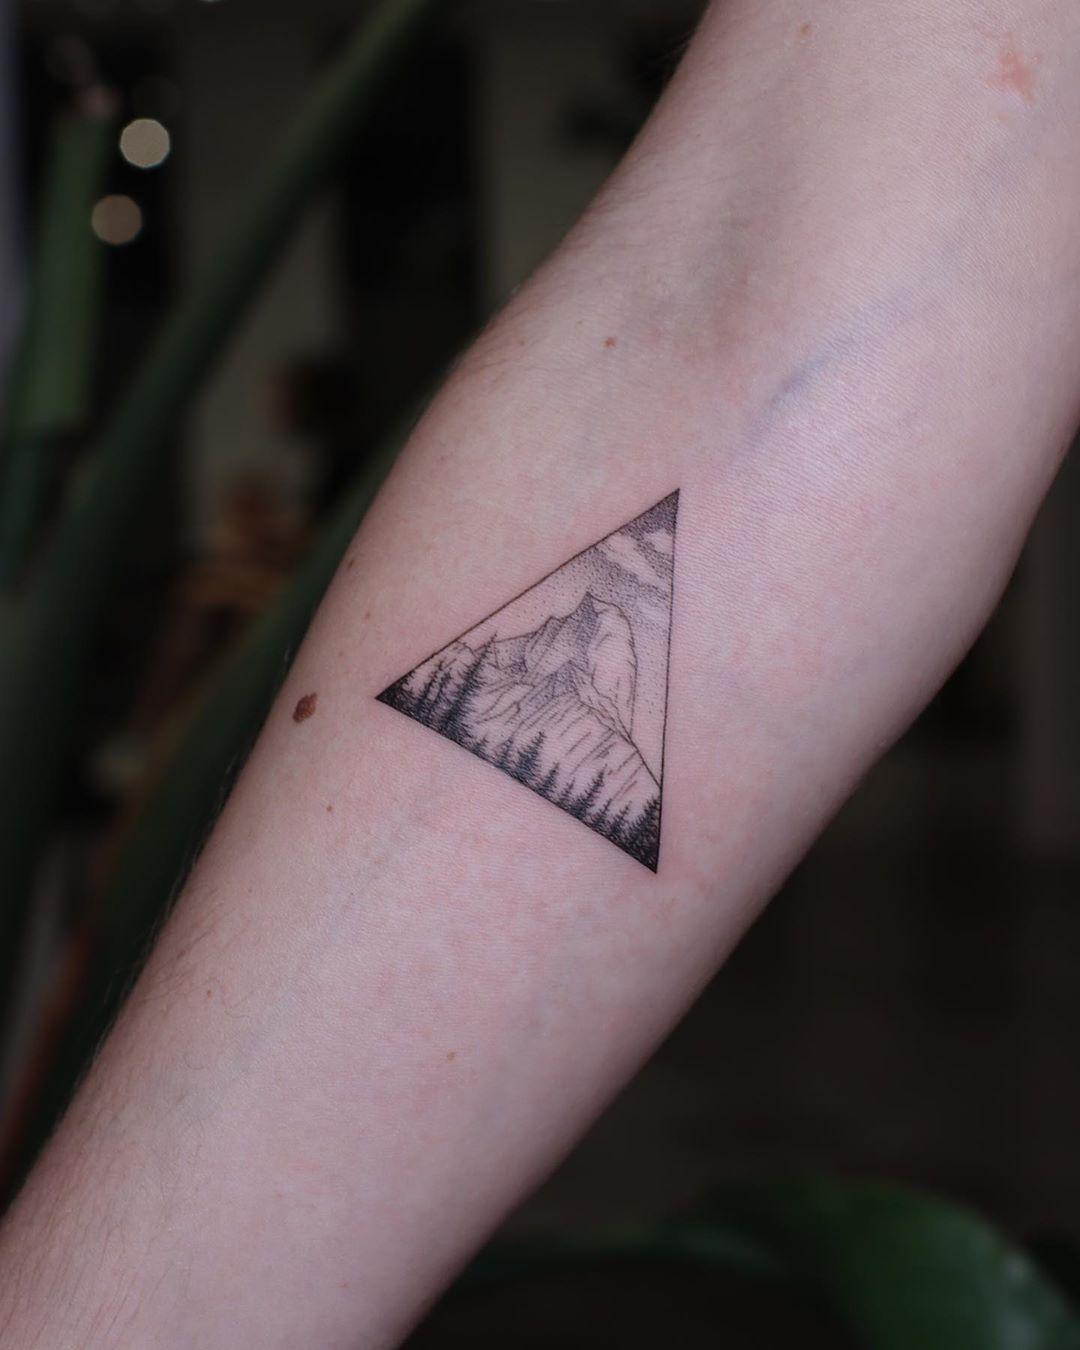 Tattoo for an outdoor spirit by @firstjing